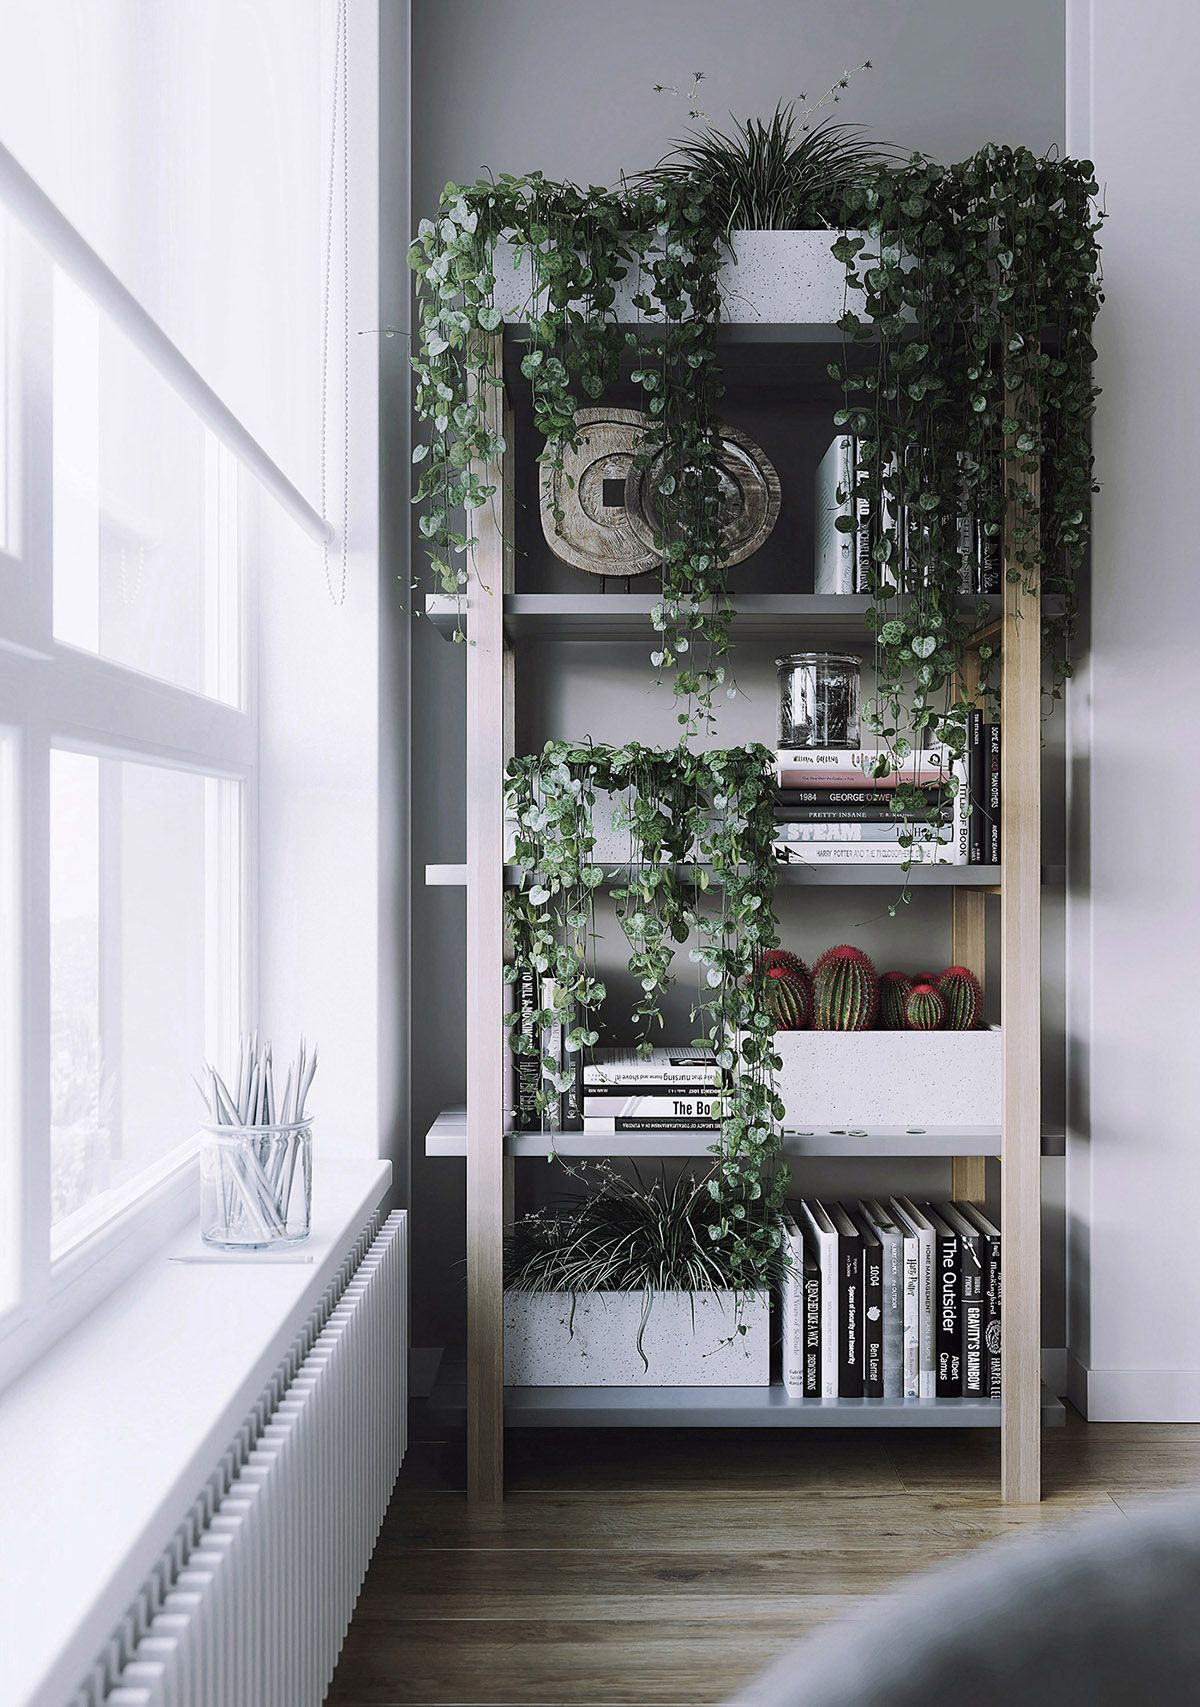 Interiors That Use Plants As Part Of The Palette With Images